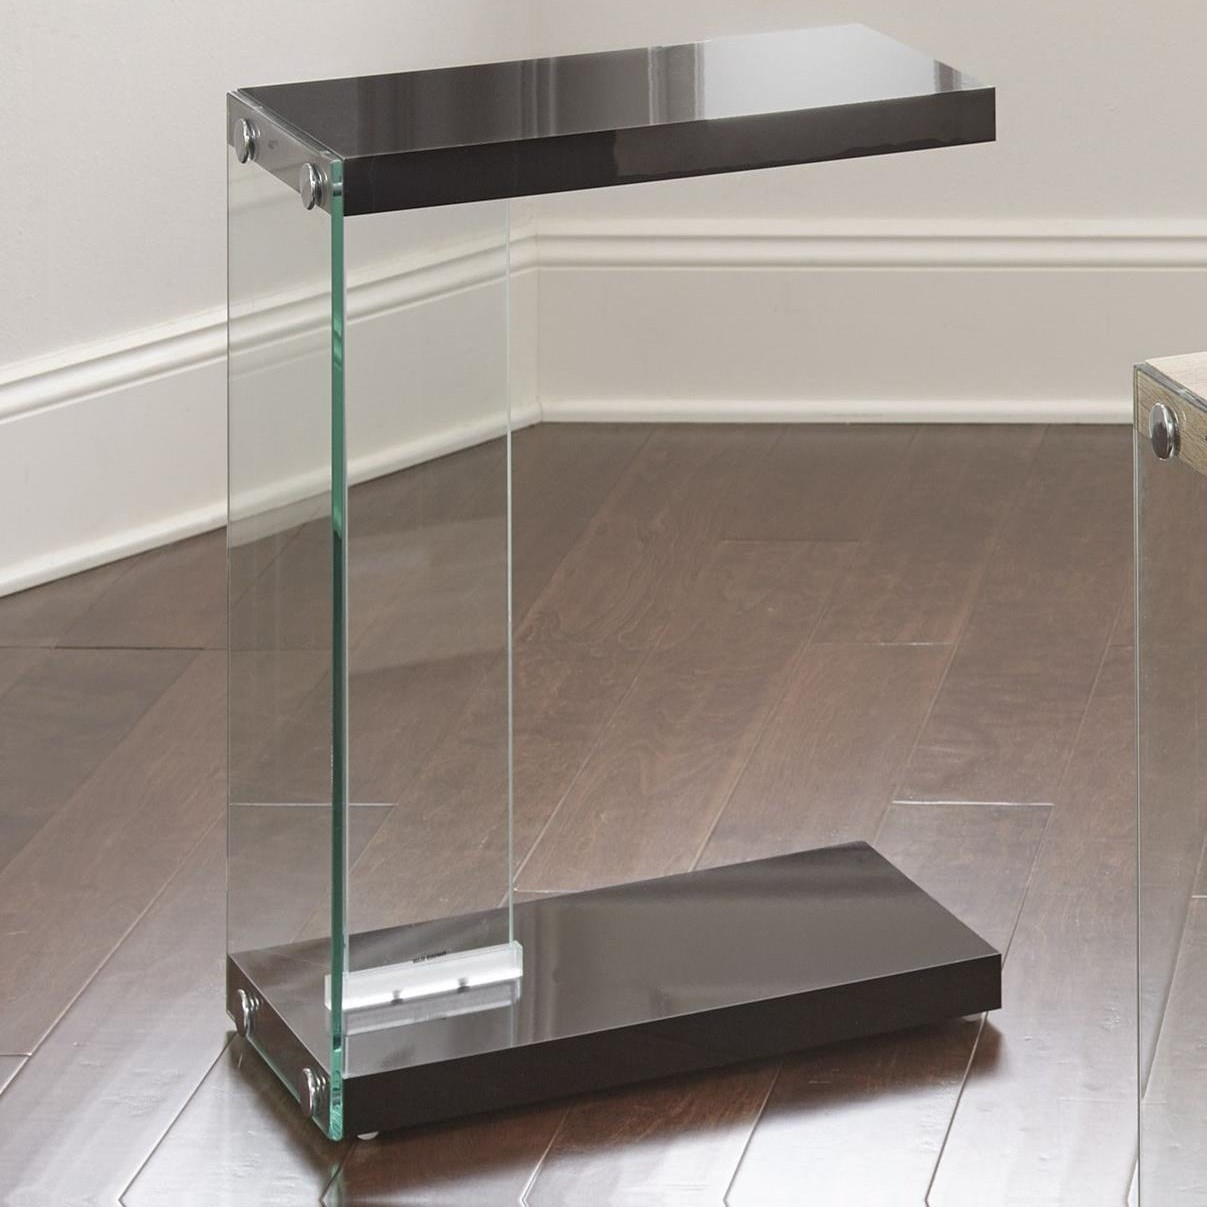 Elaina Chair Side End Table by Steve Silver at Northeast Factory Direct